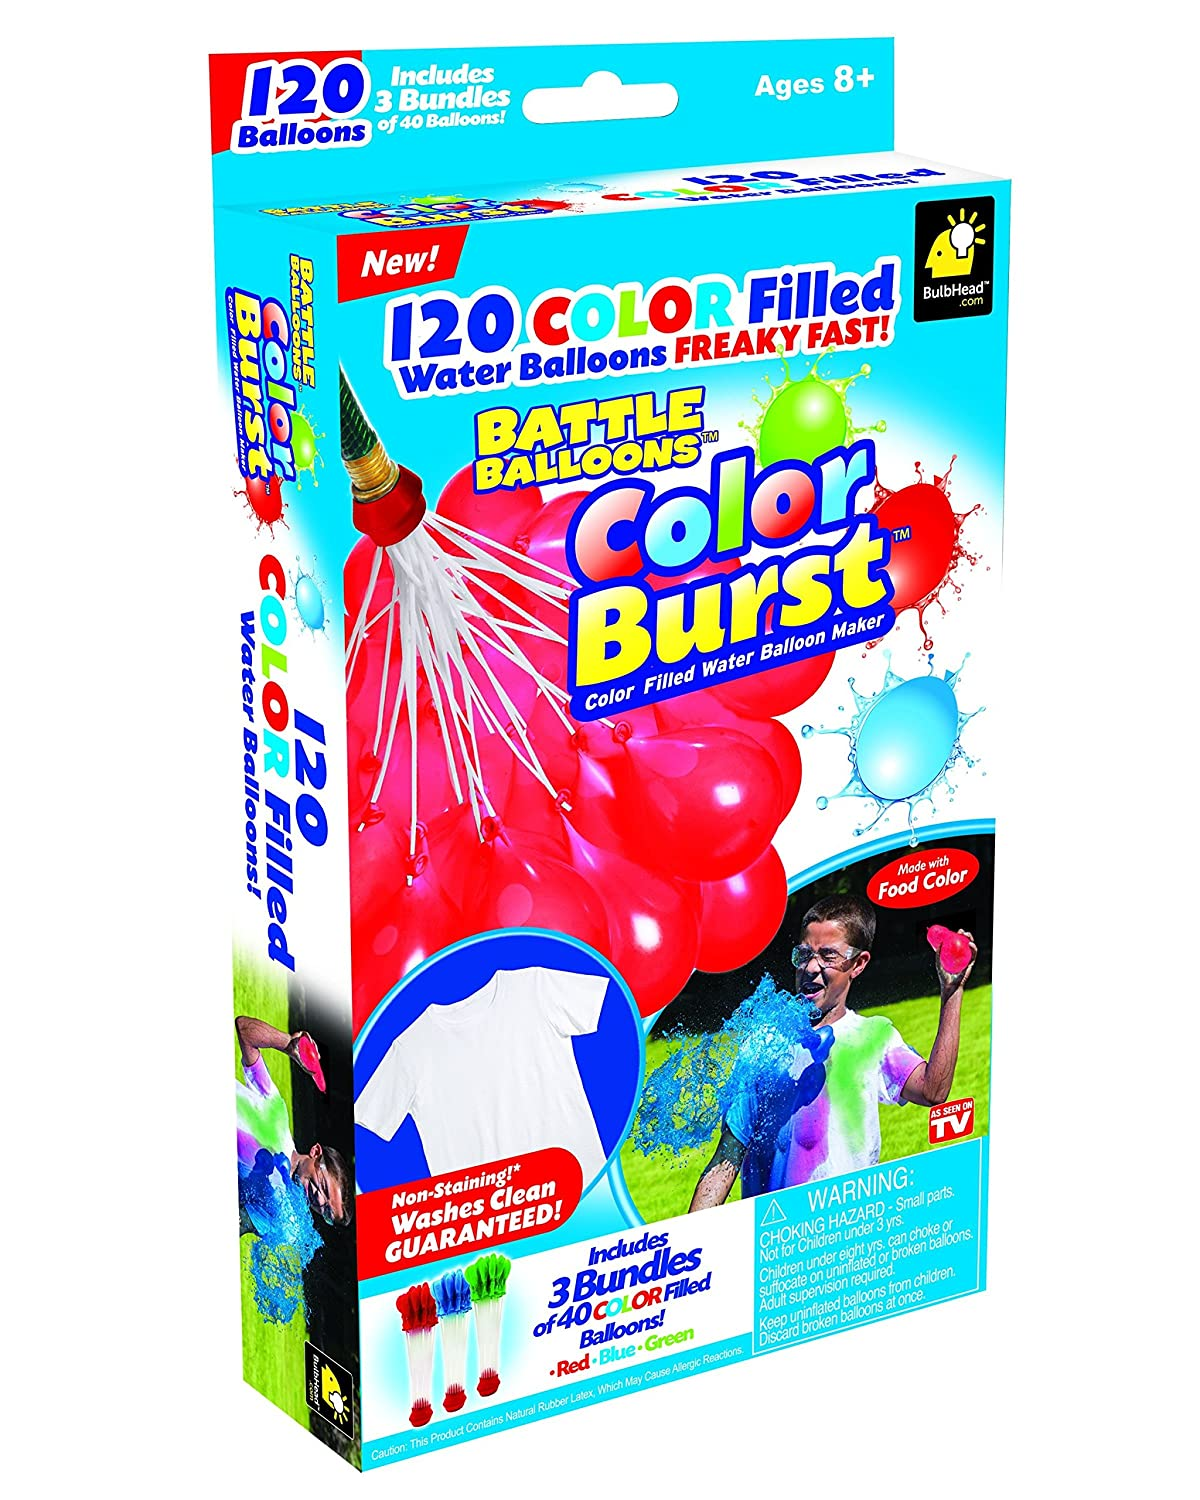 Battle Balloons - Color-filled Water Balloons - Create Your Own Balloon Battle